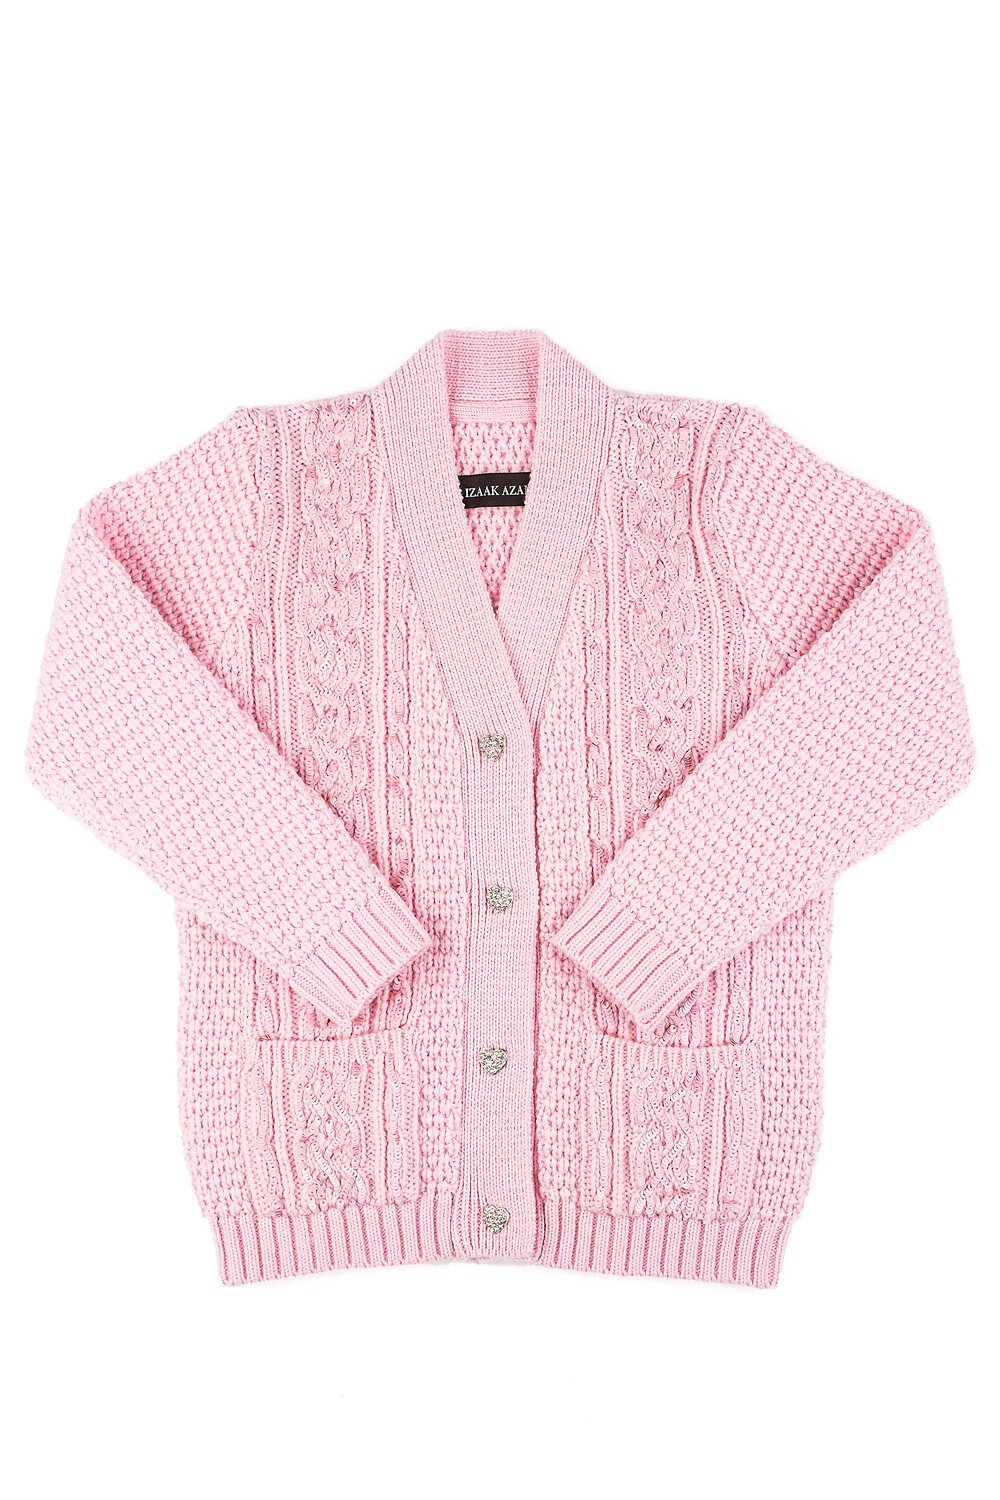 Little IA: Pink Sequin Embellished Cardigan